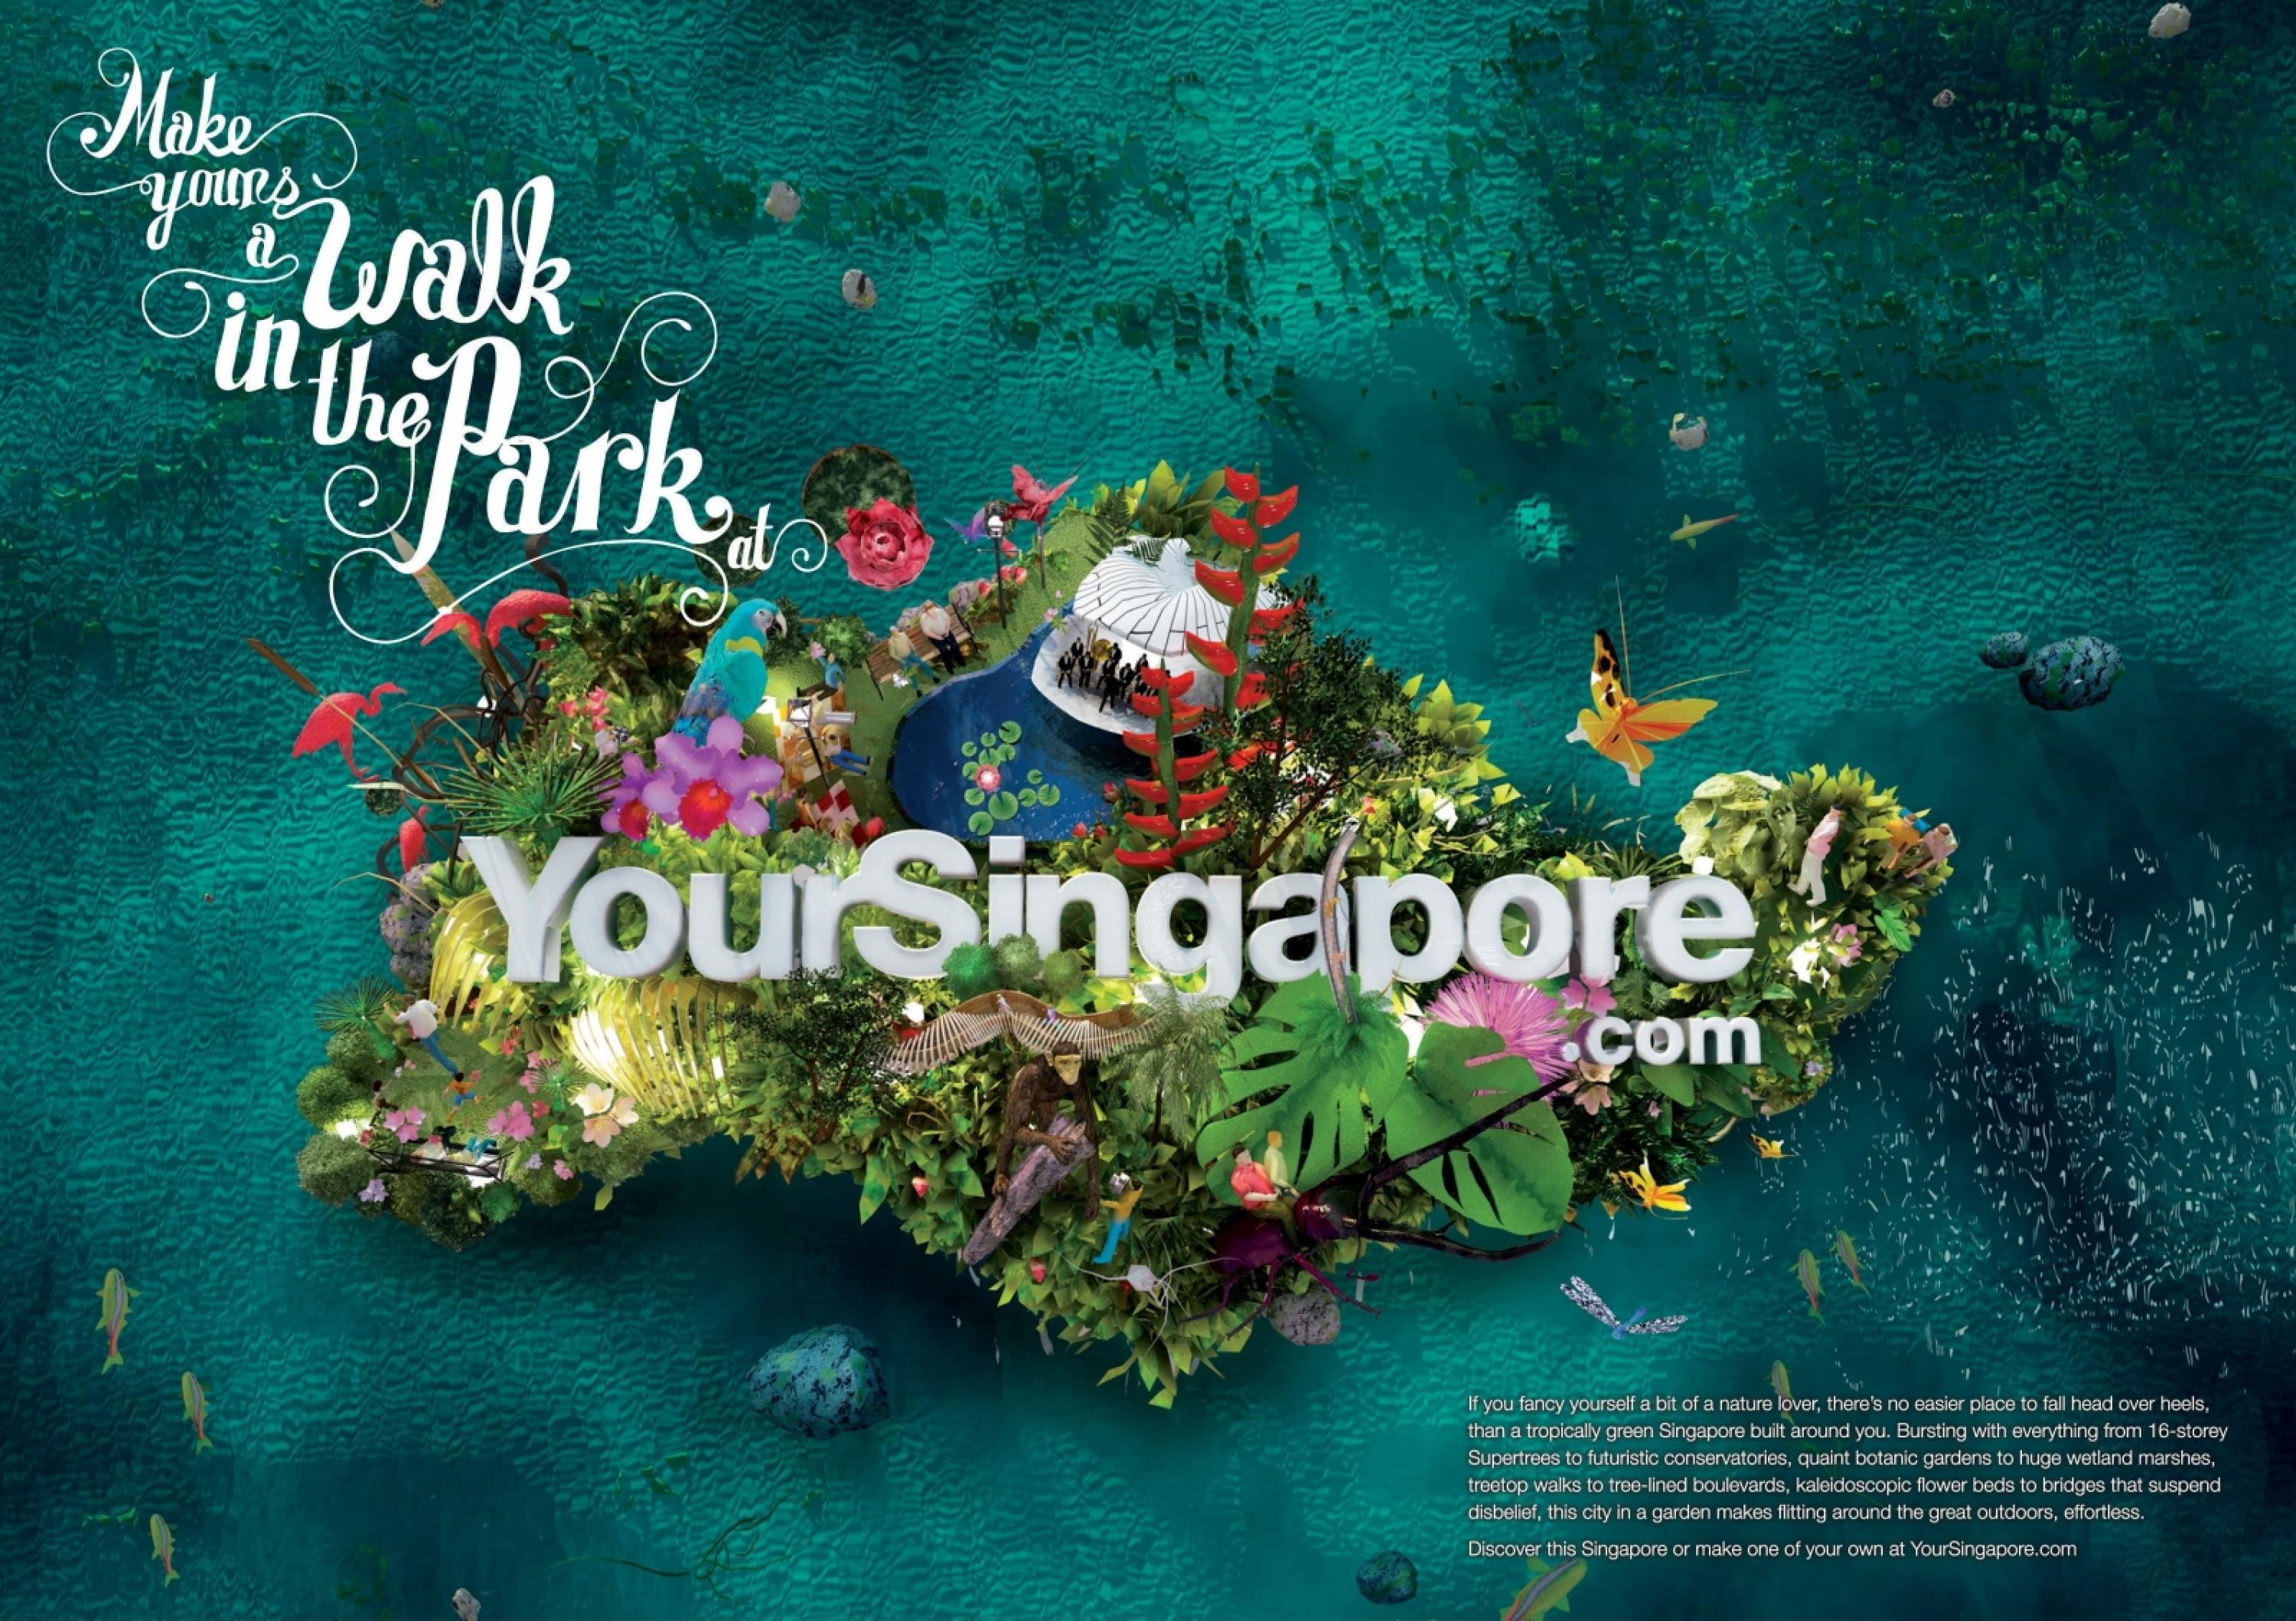 tourism singapore Medical tourism to singapore: hospitals list, prices, information on the health system in singapore, pros & cons, and more.